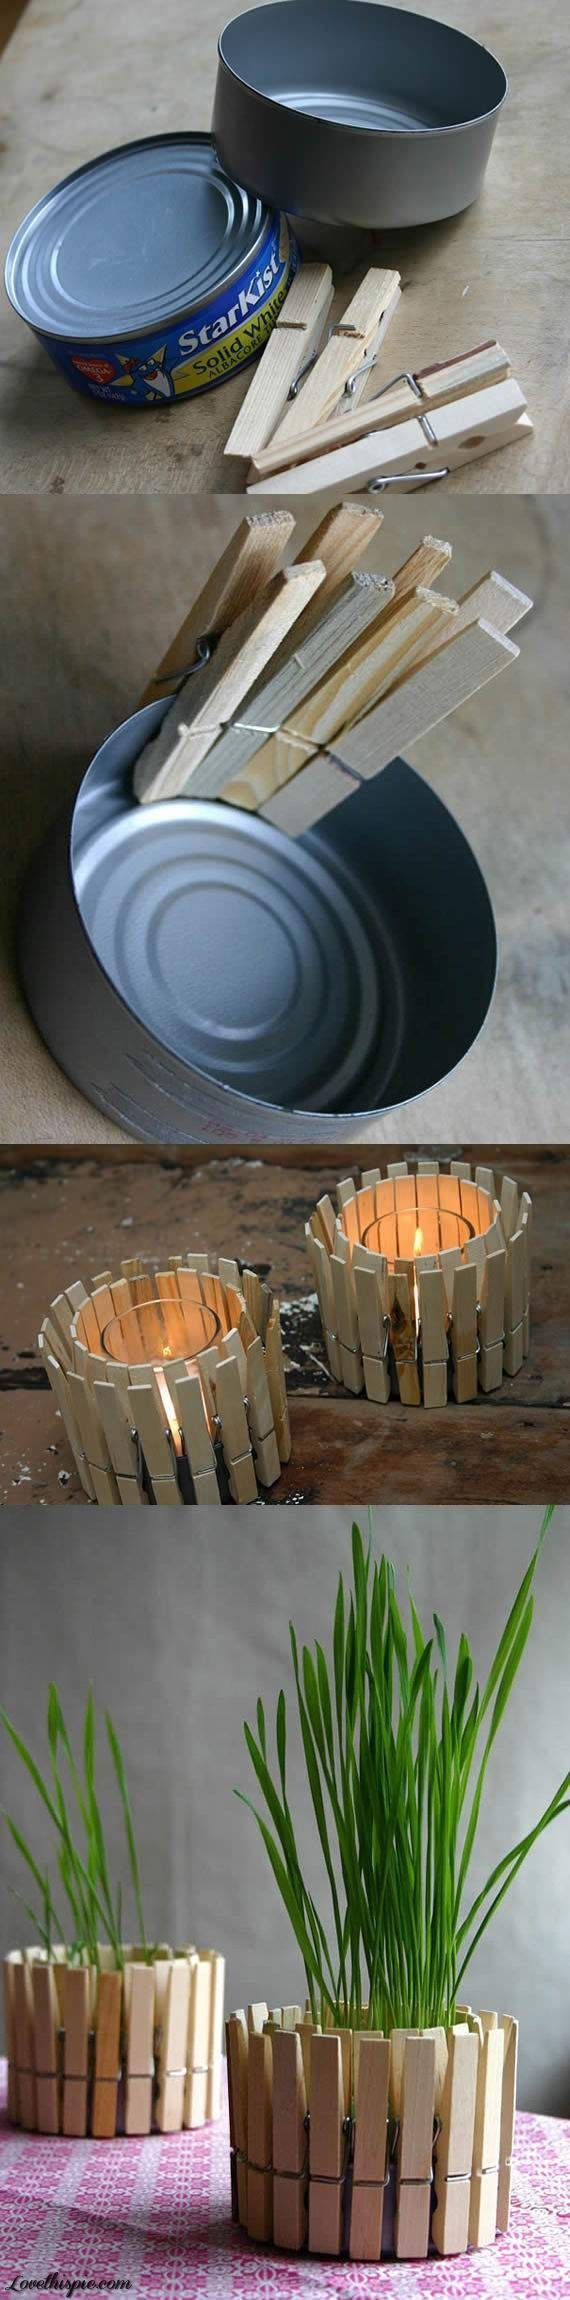 Clothes Line Planter Candles Pictures, Photos, and Images for Facebook, Tumblr, Pinterest, and Twitter